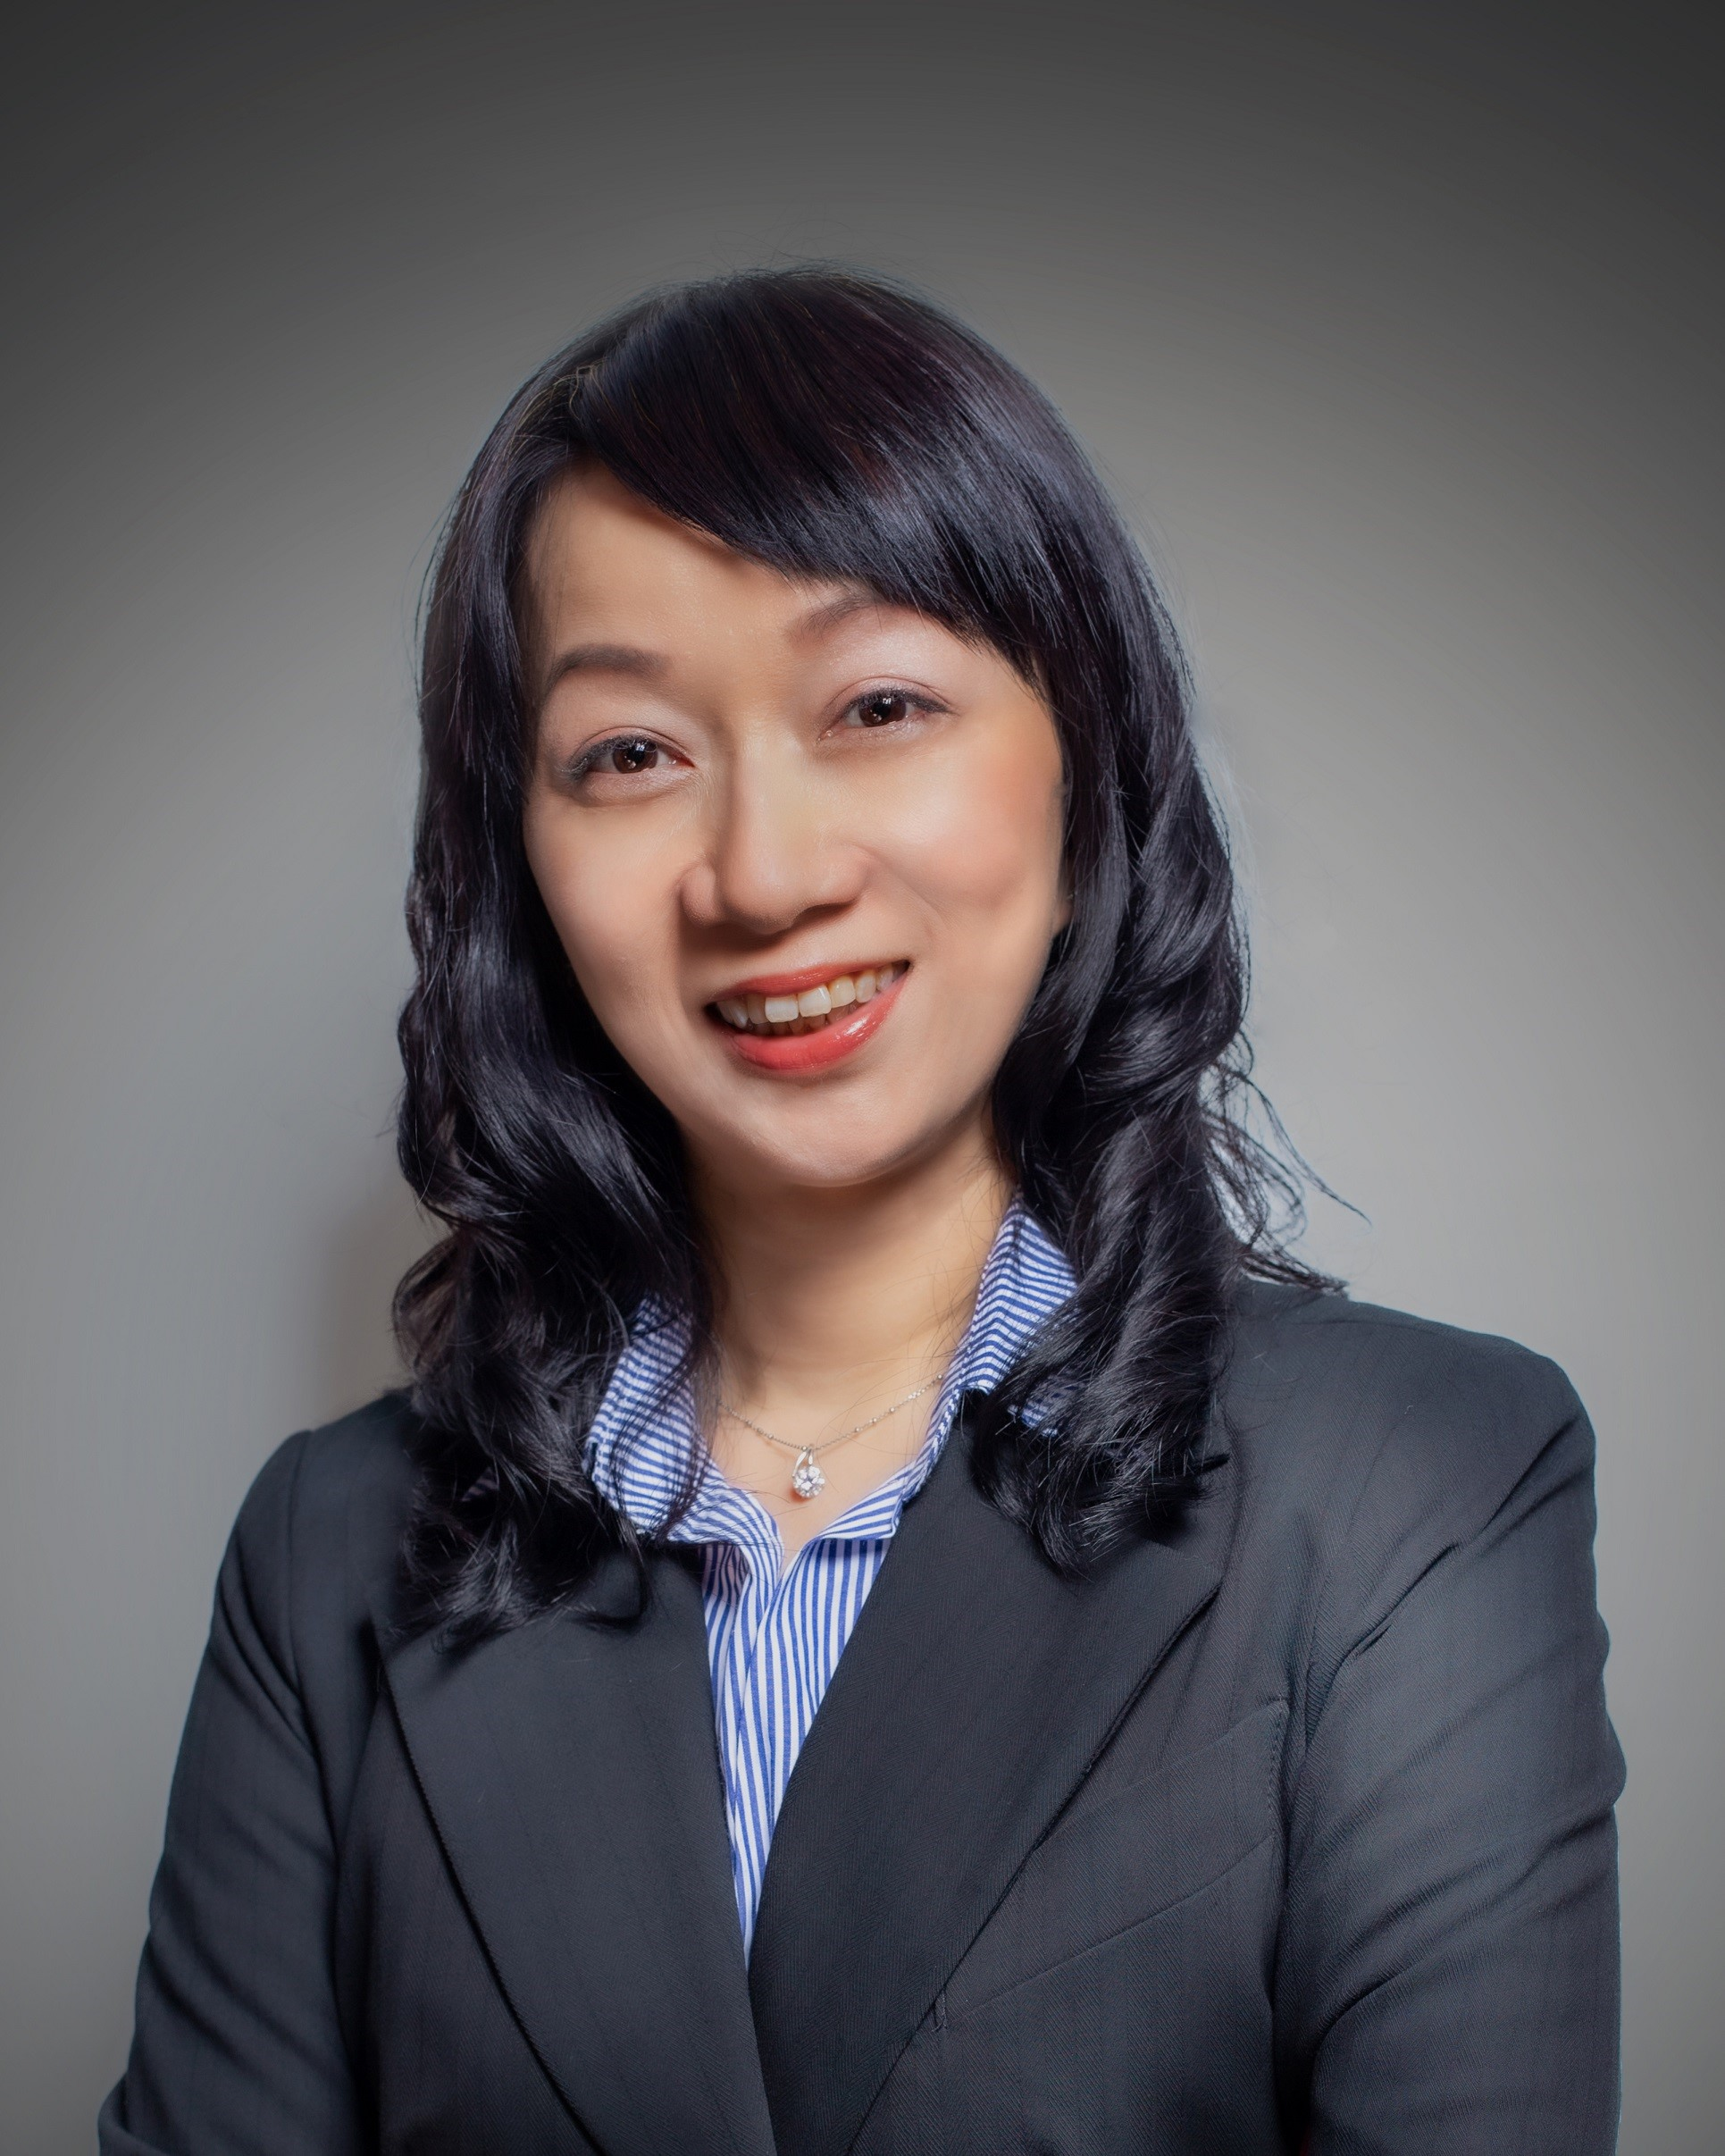 SGS Appoints Yvonne Tse as Vice President, Global Softlines at SGS